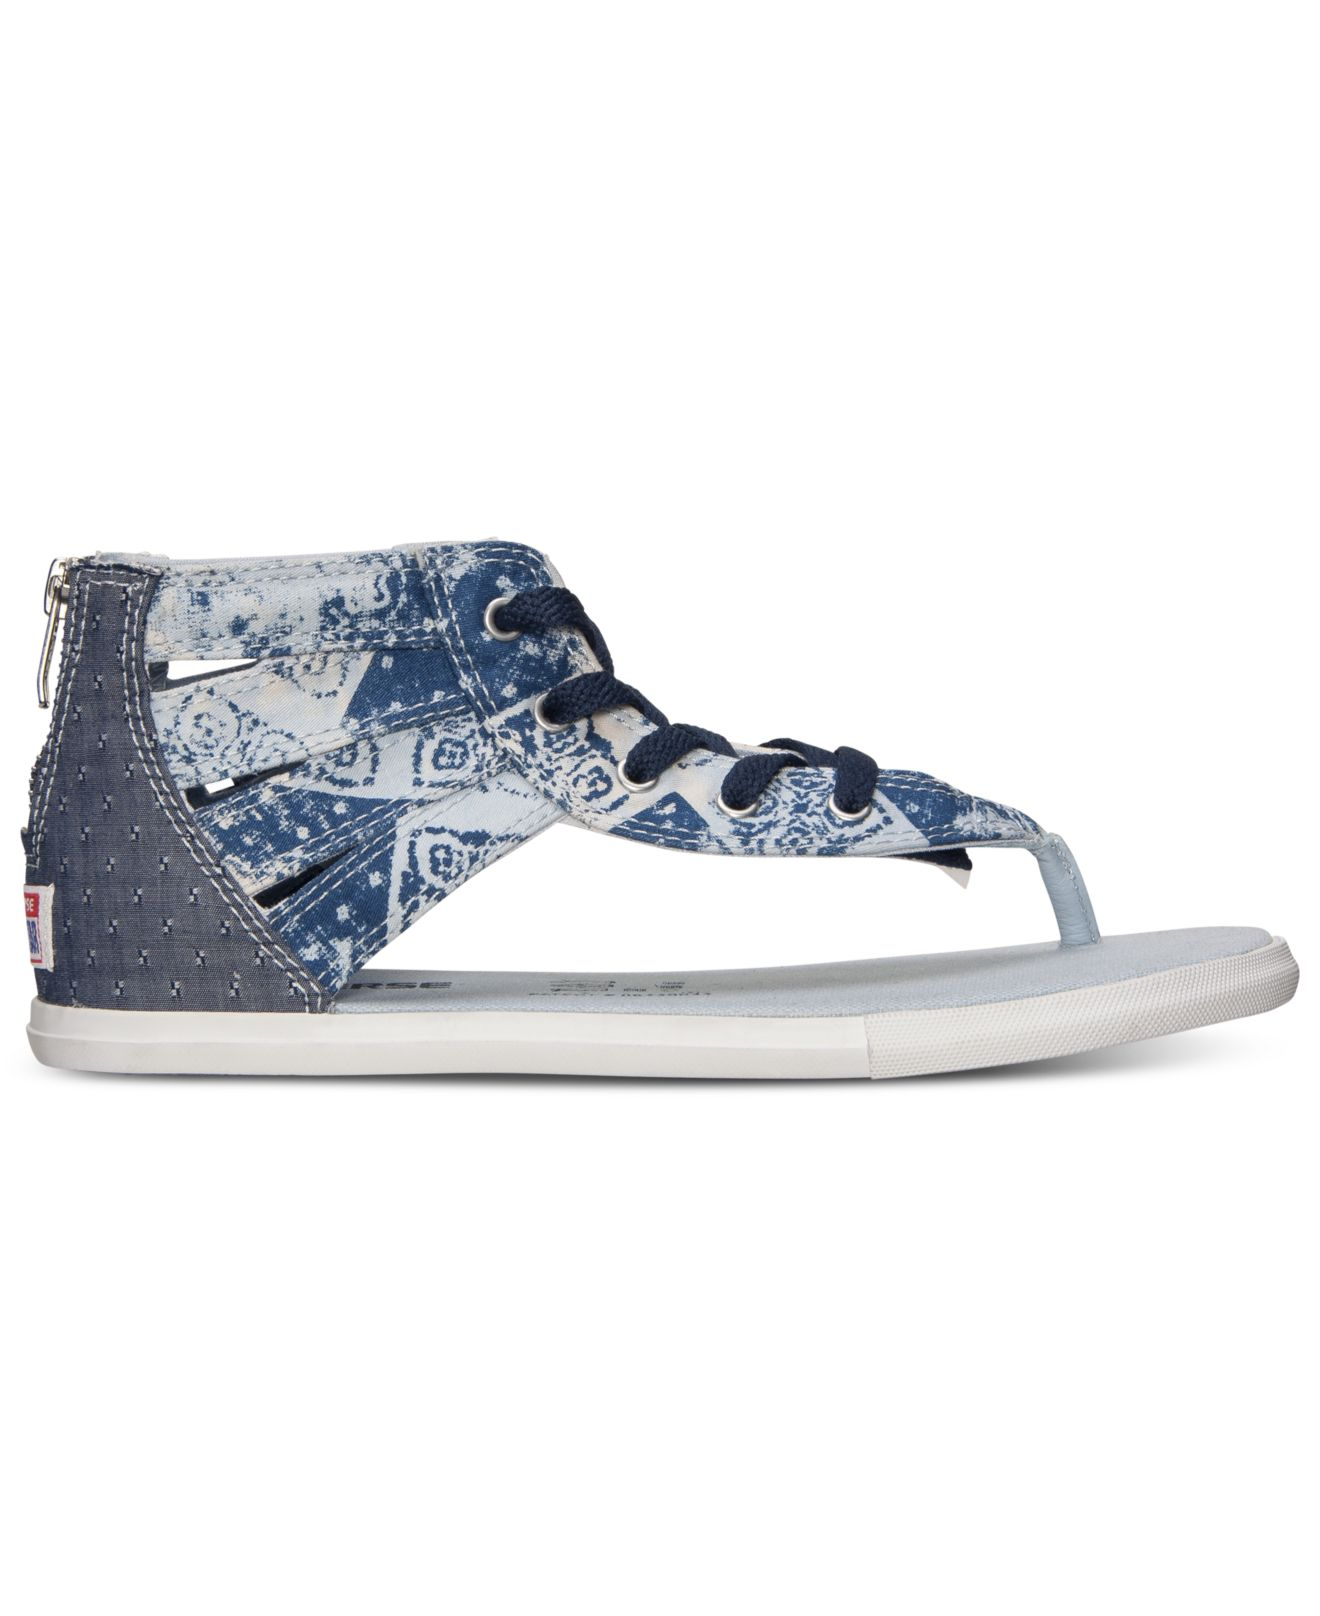 Amazing Converse Women39s Chuck Taylor Gladiator Thong Sandals From